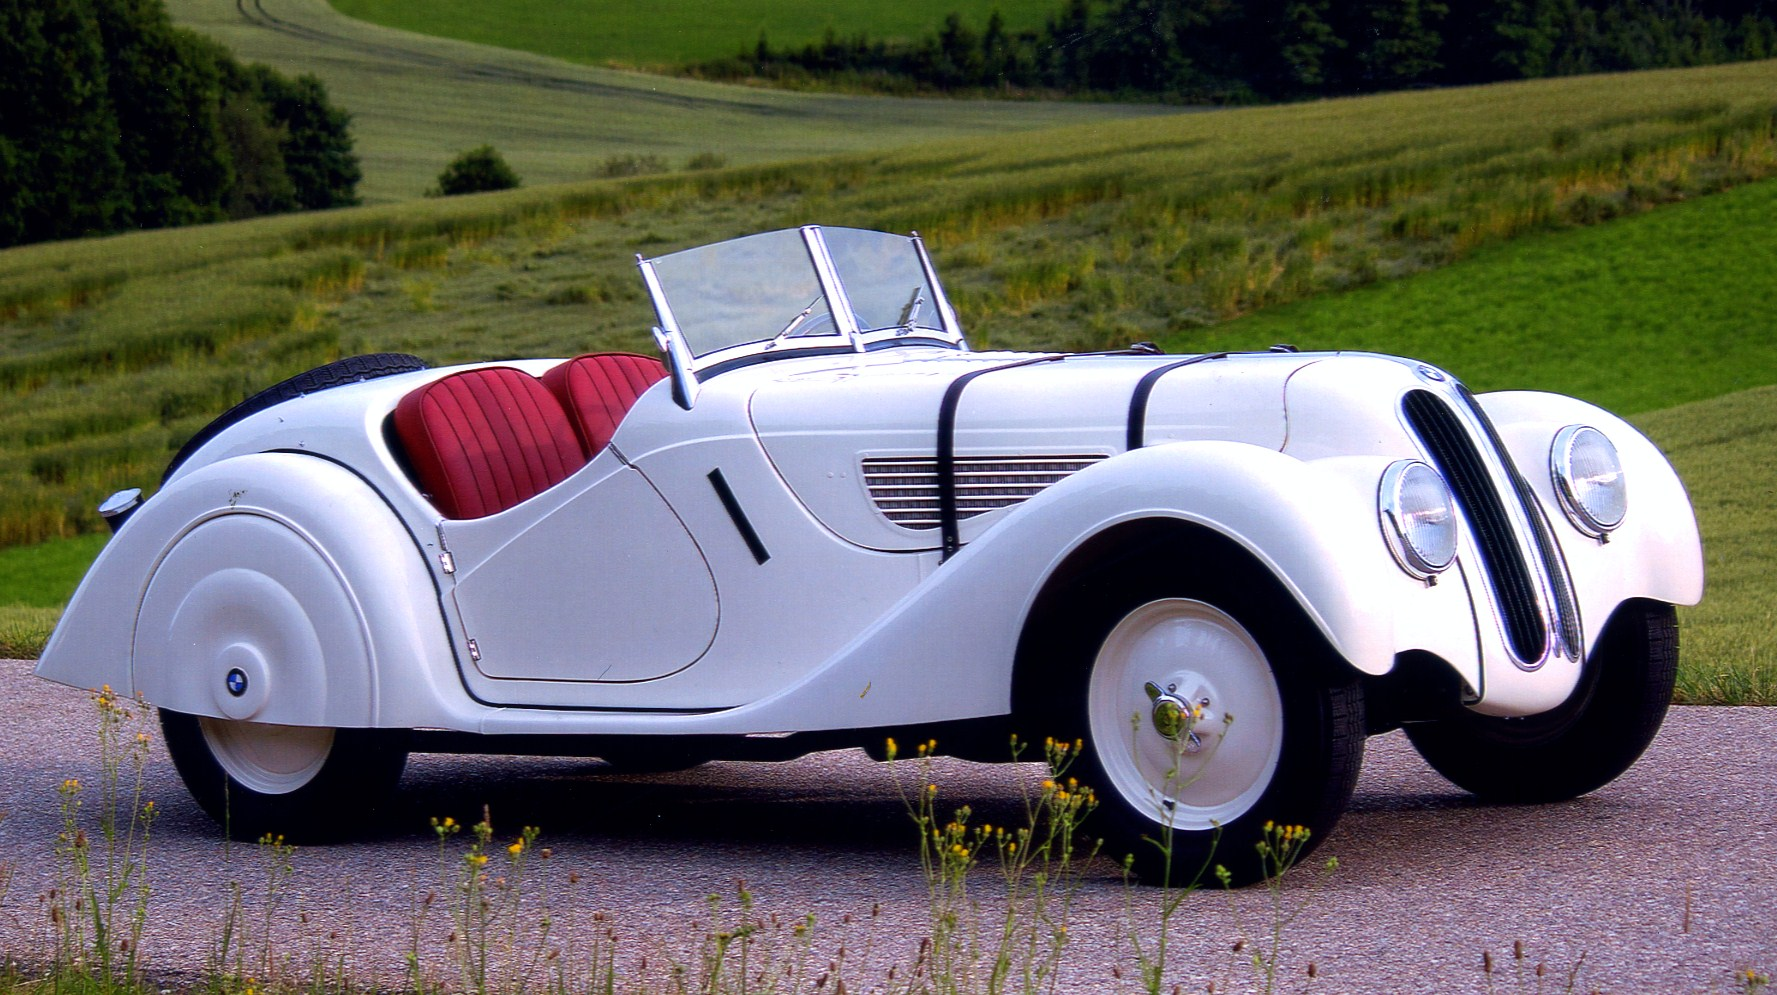 Amelia Island Concours honors 1930s BMW 328